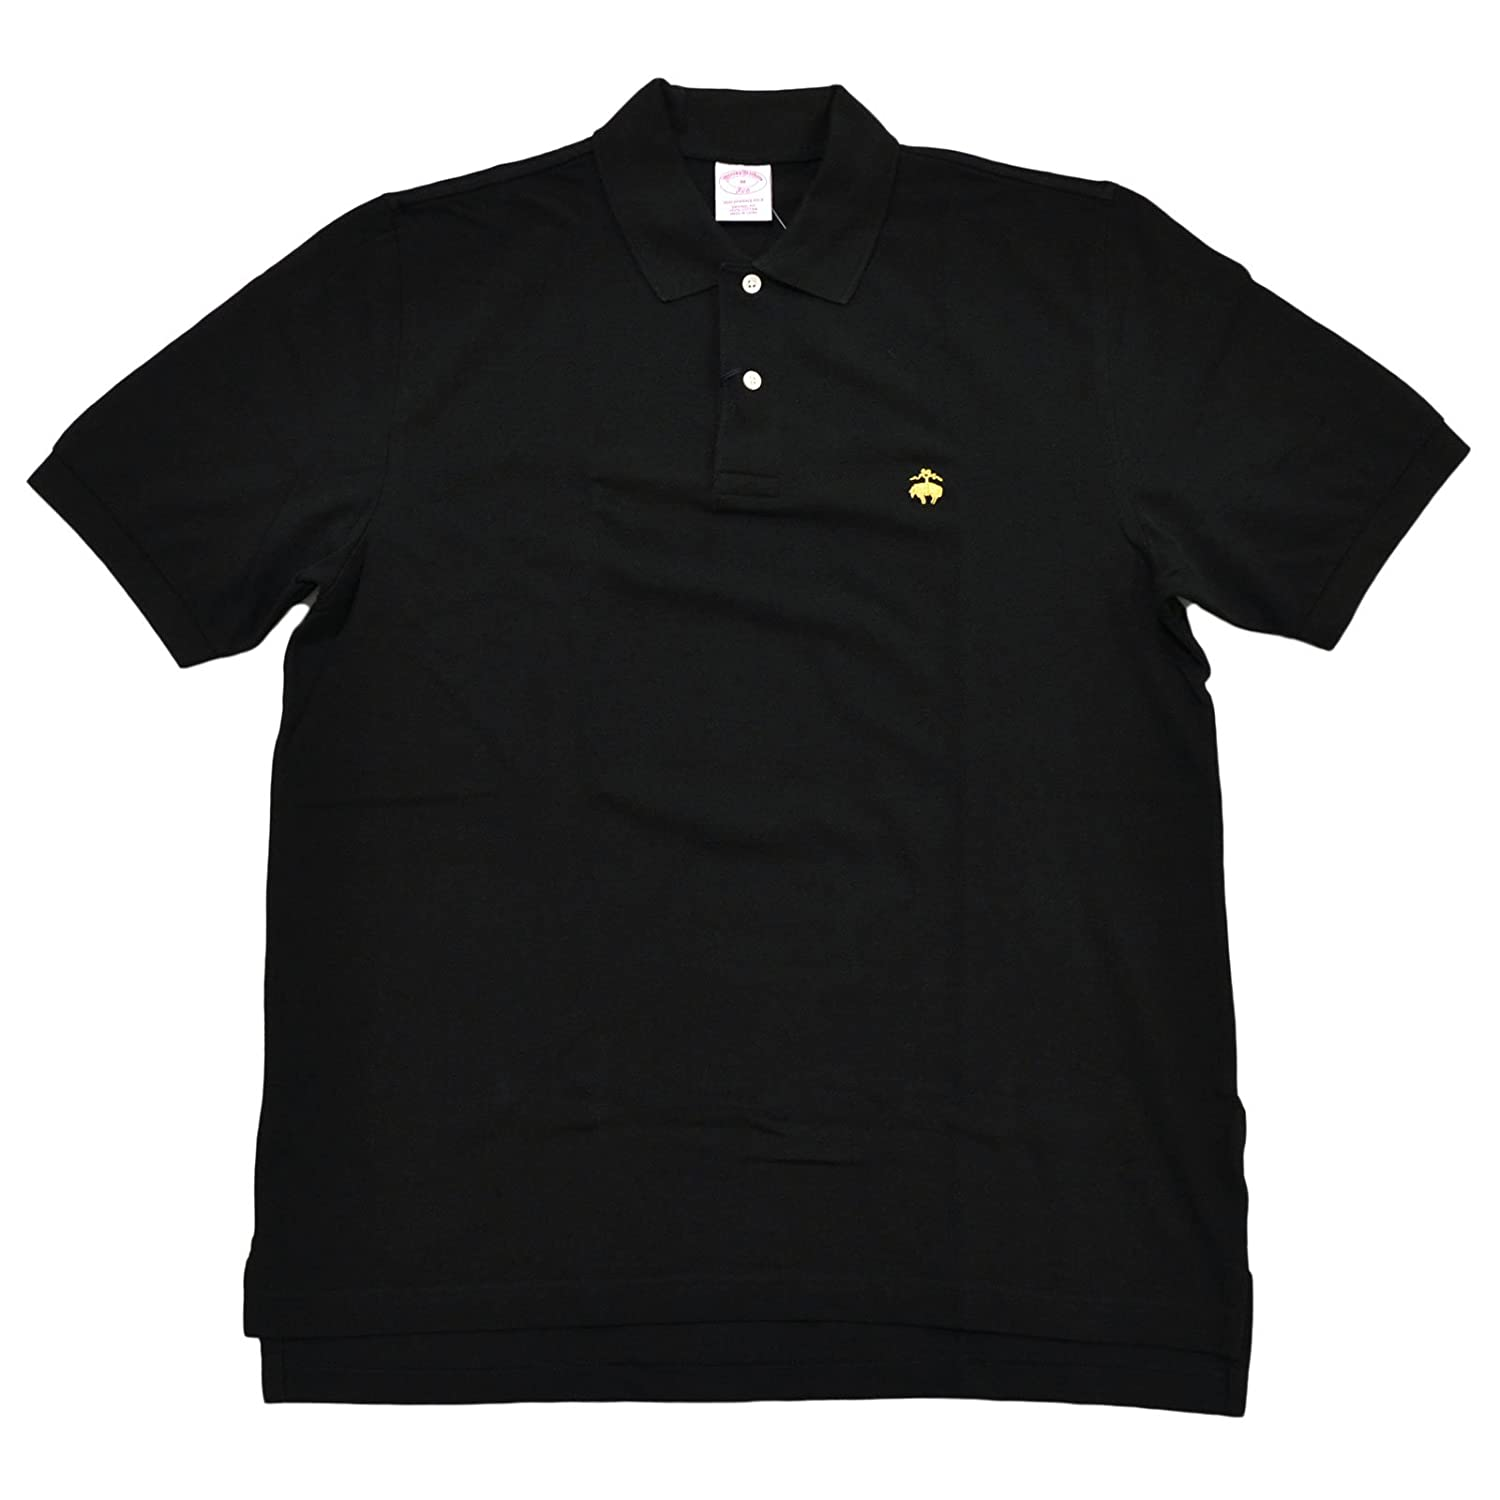 Brooks Brothers Golden Fleece Original Fit Performance Polo Shirt at Amazon  Men s Clothing store  106ad2184